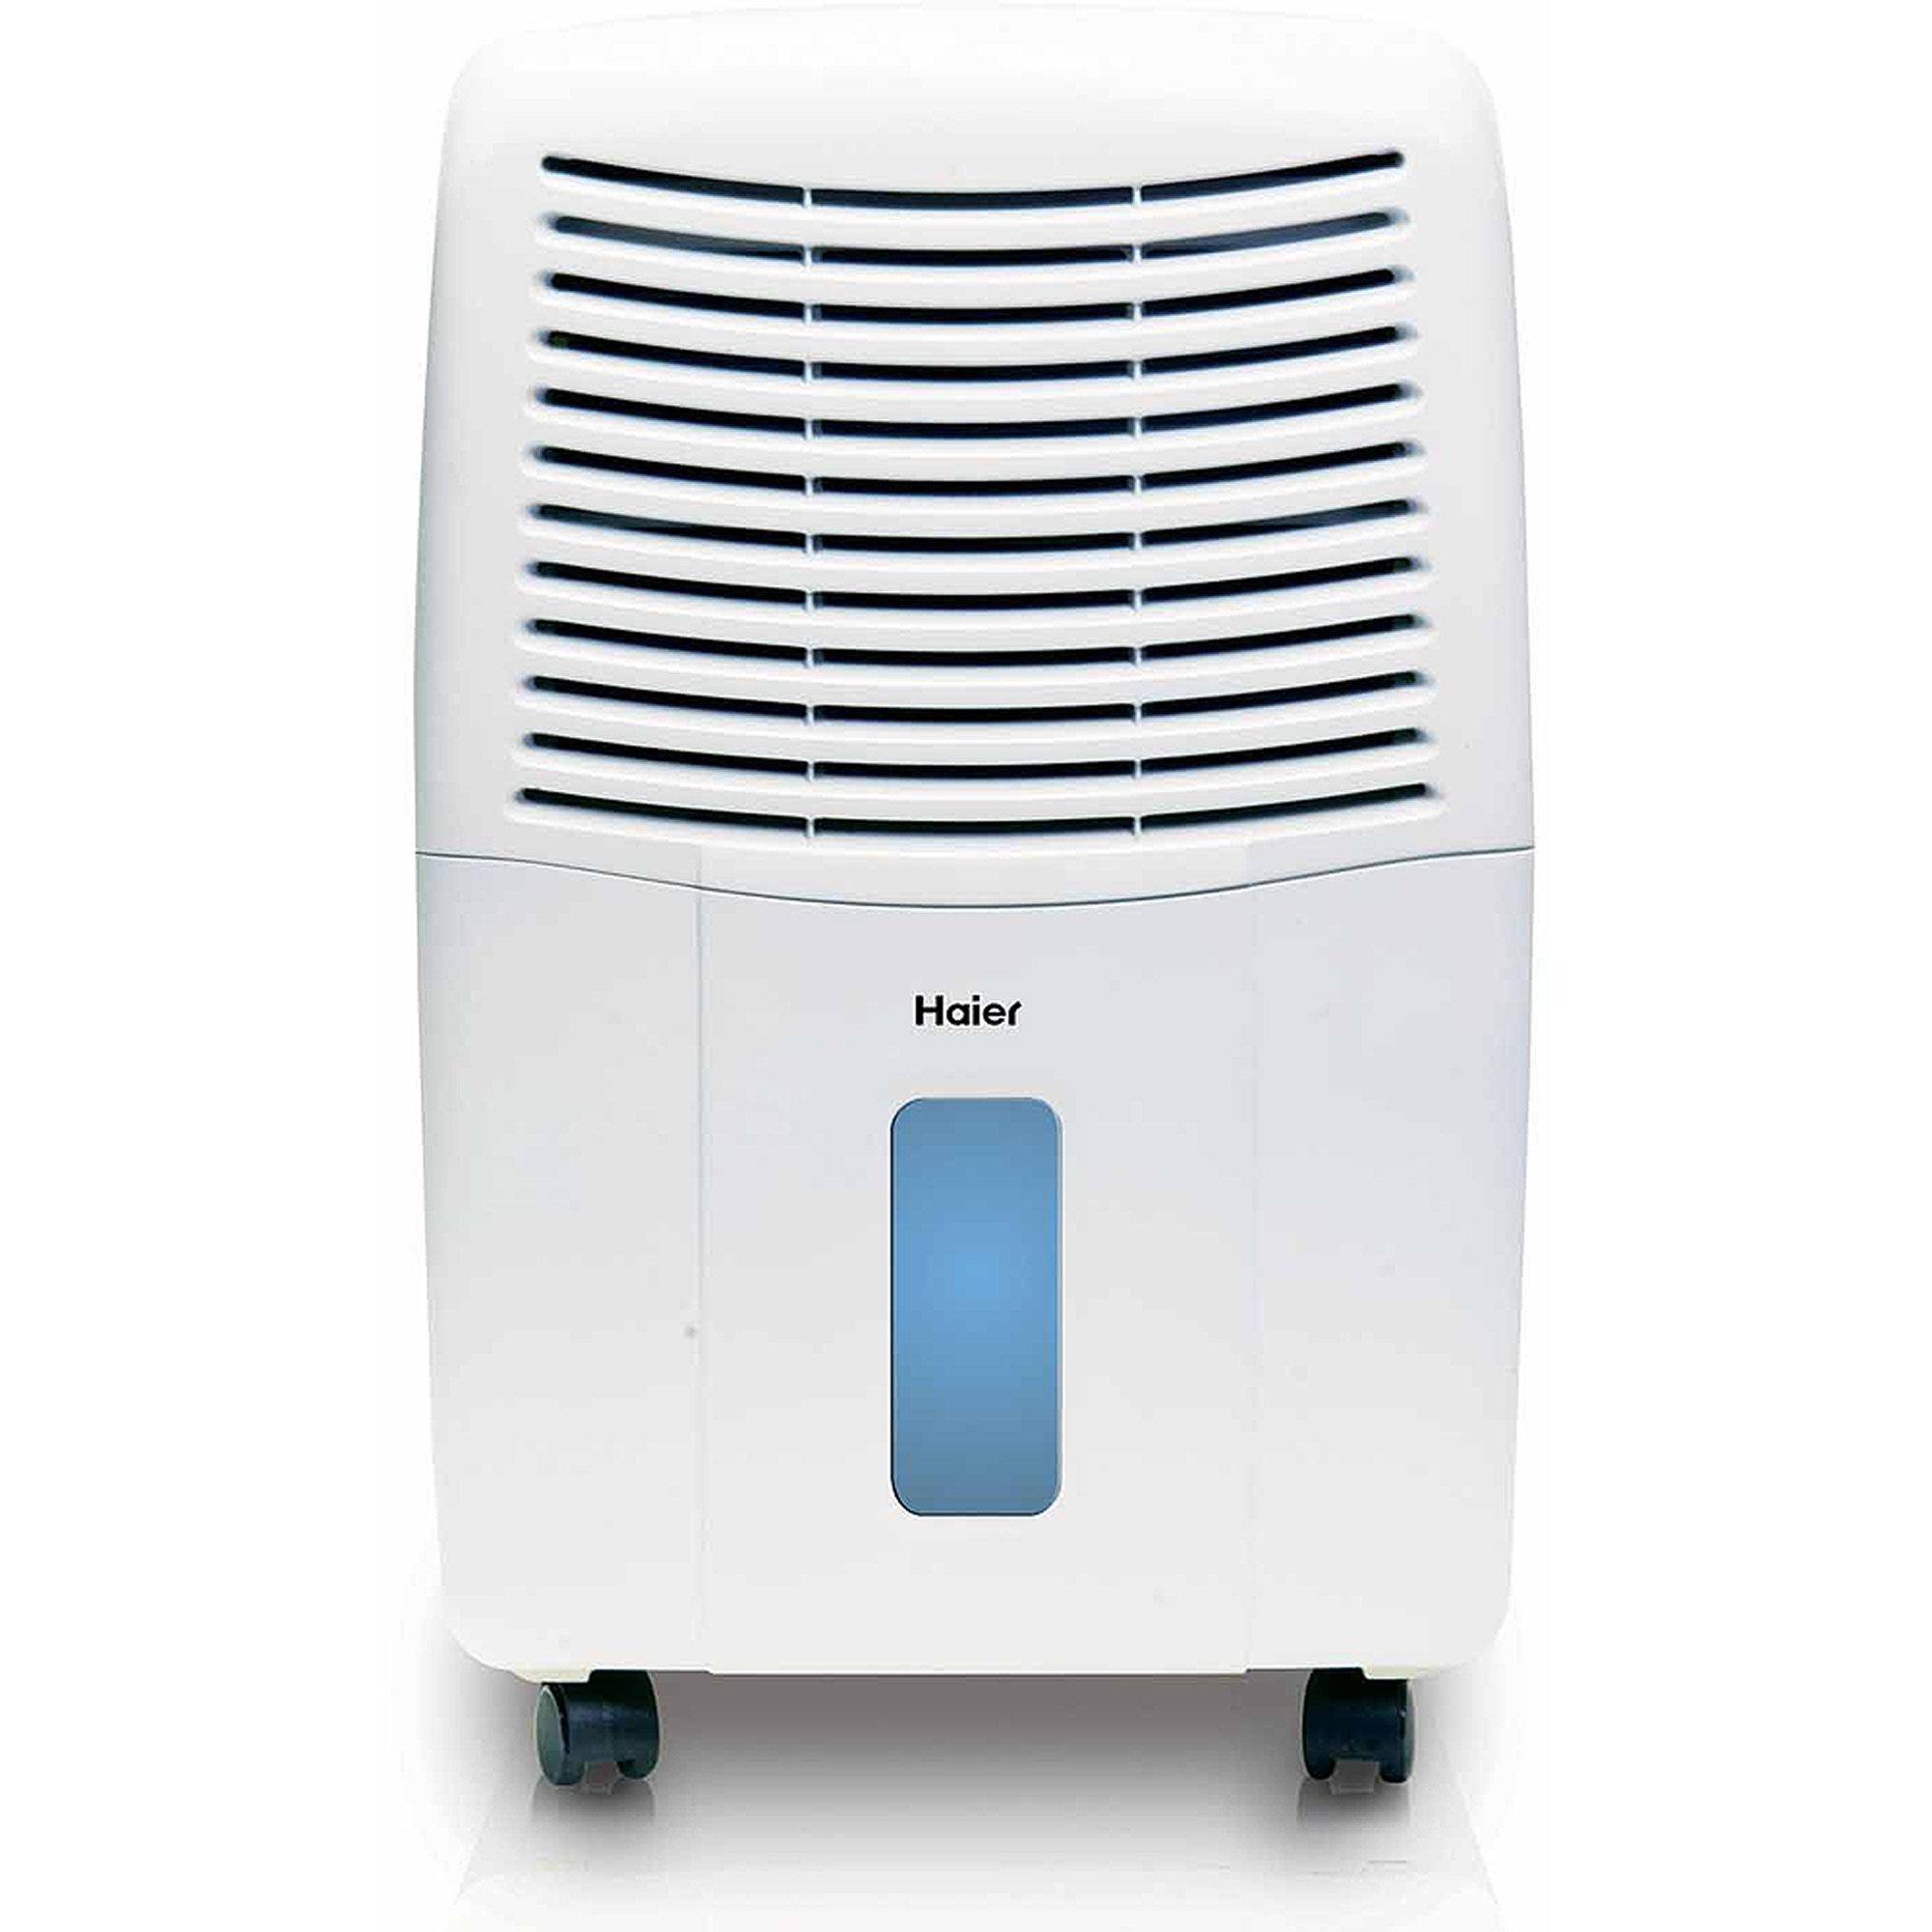 Haier DE65MLB 65-Pint Electronic Dehumidifier, Factory-Reconditioned